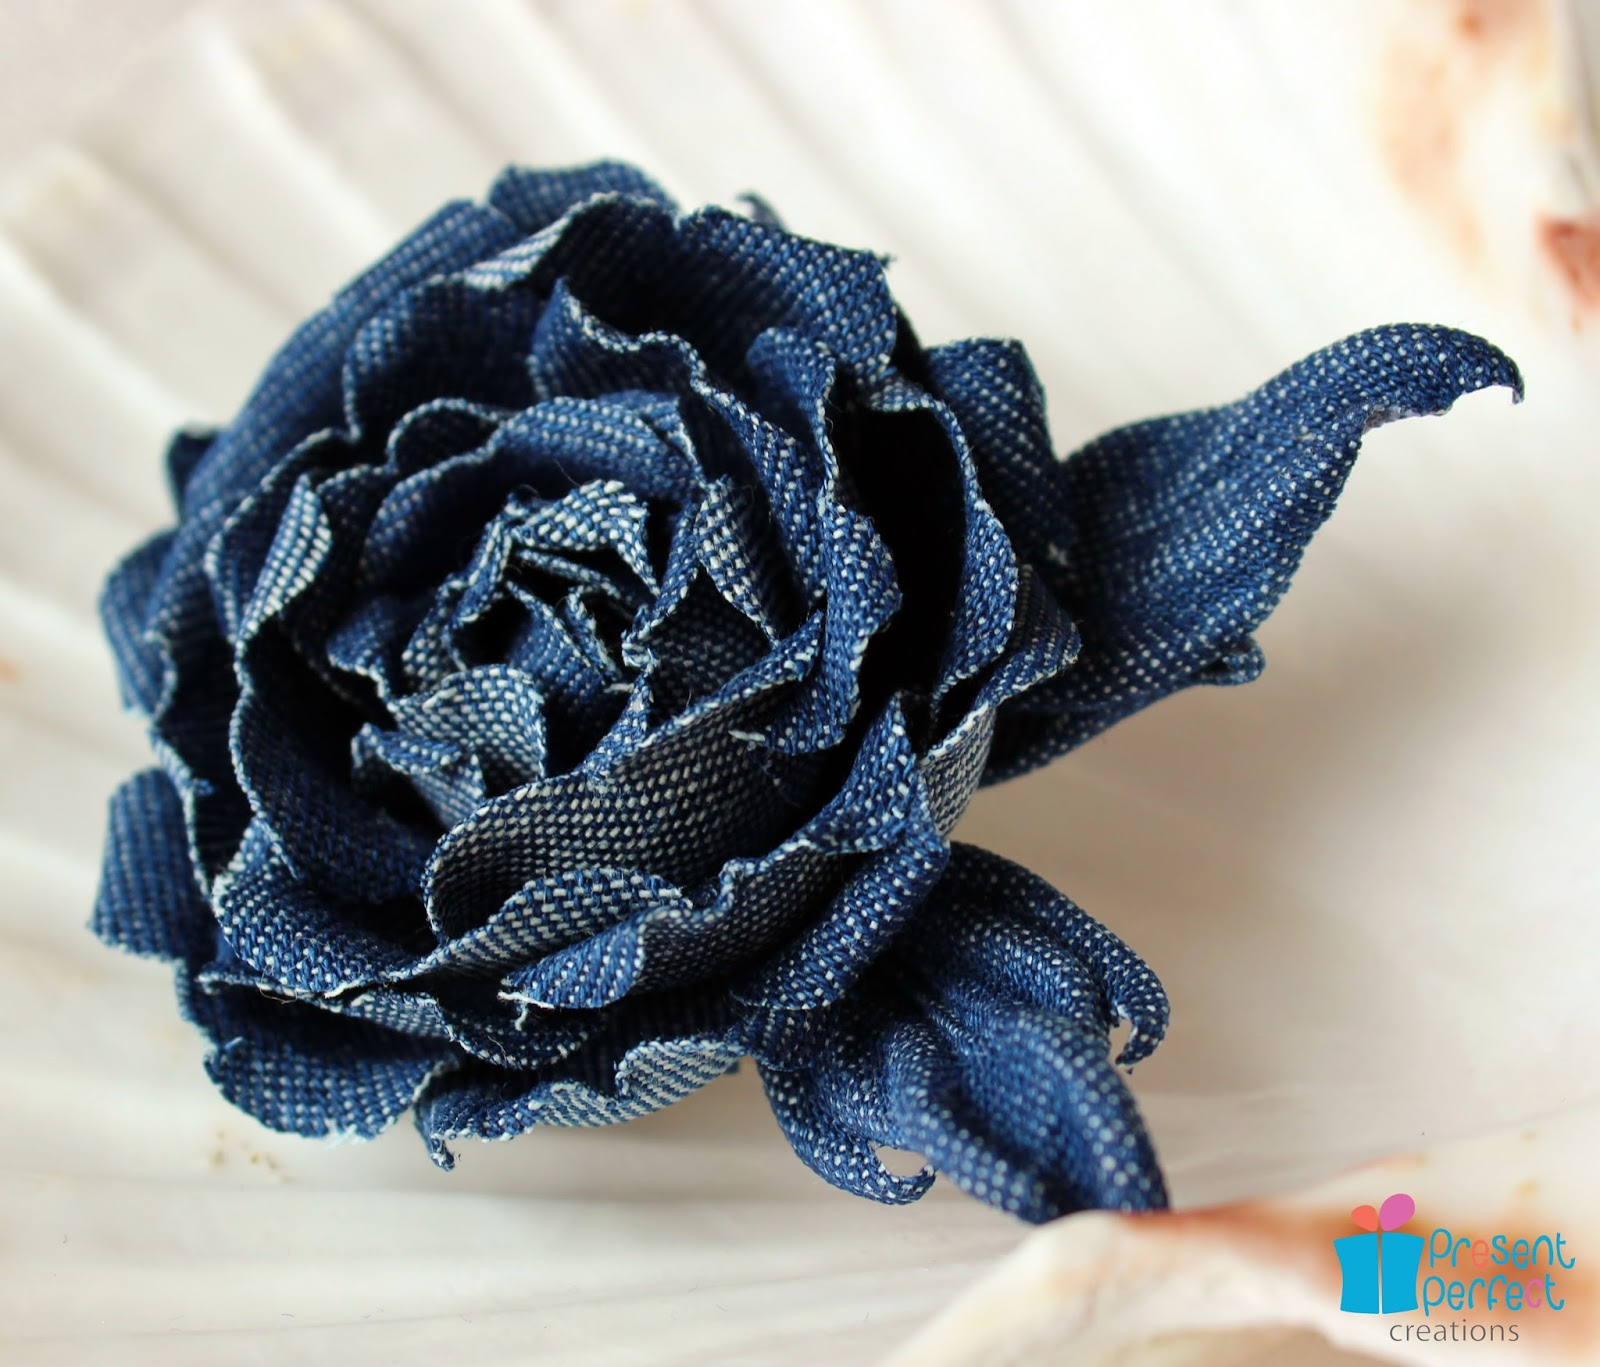 Present Perfect Creations Denim Themed Weddings